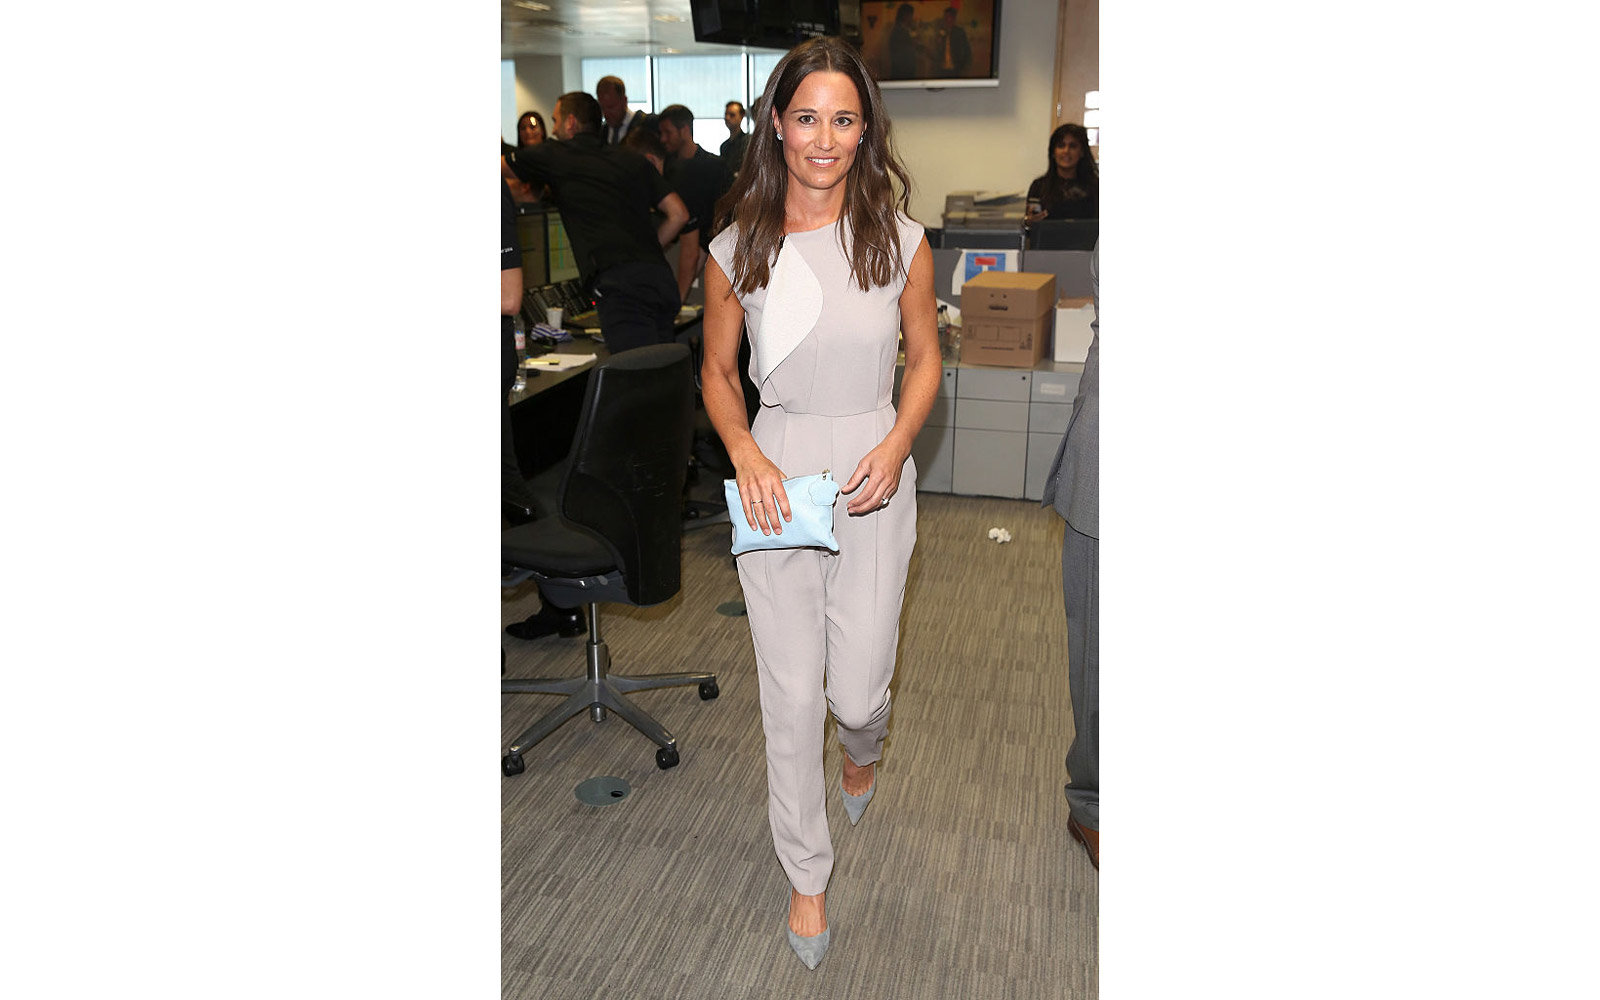 LONDON, ENGLAND - SEPTEMBER 12:  Pippa Middleton attends the BGC Annual Global Charity Day at Canary Wharf on September 12, 2016 in London, England.  (Photo by Tim P. Whitby/Getty Images)